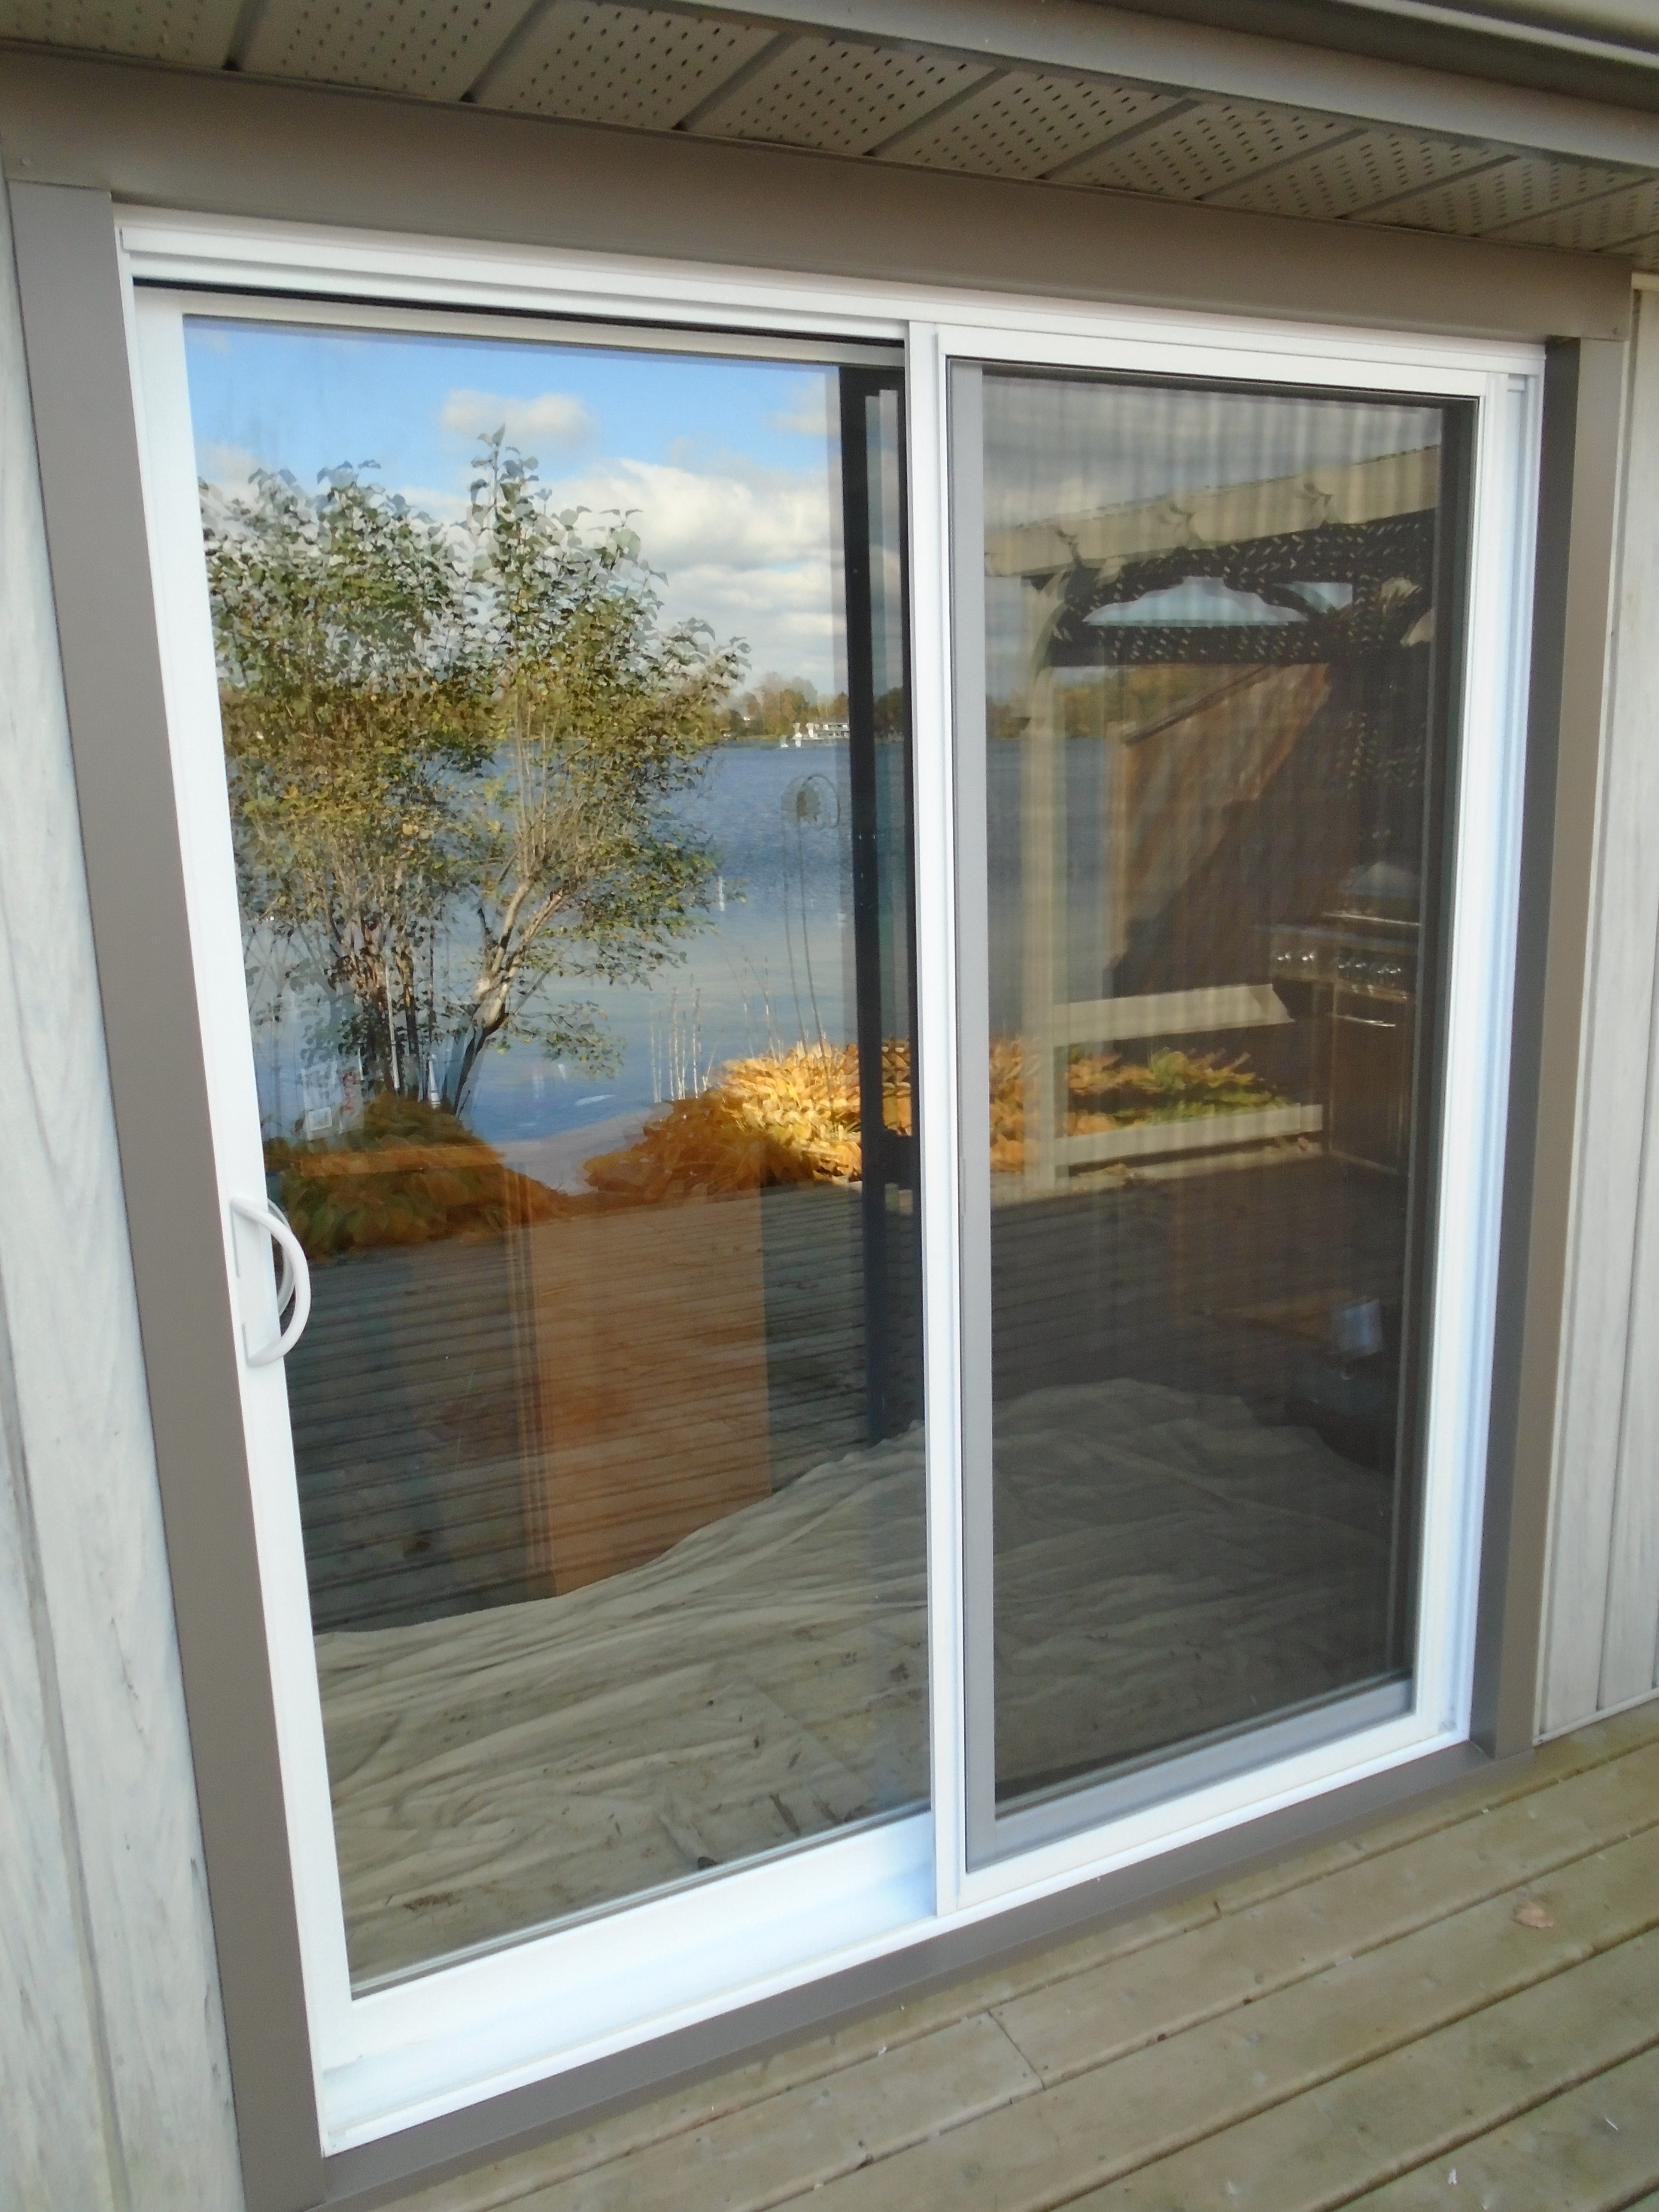 How much are patio doors examples ideas pictures for Patio window replacement